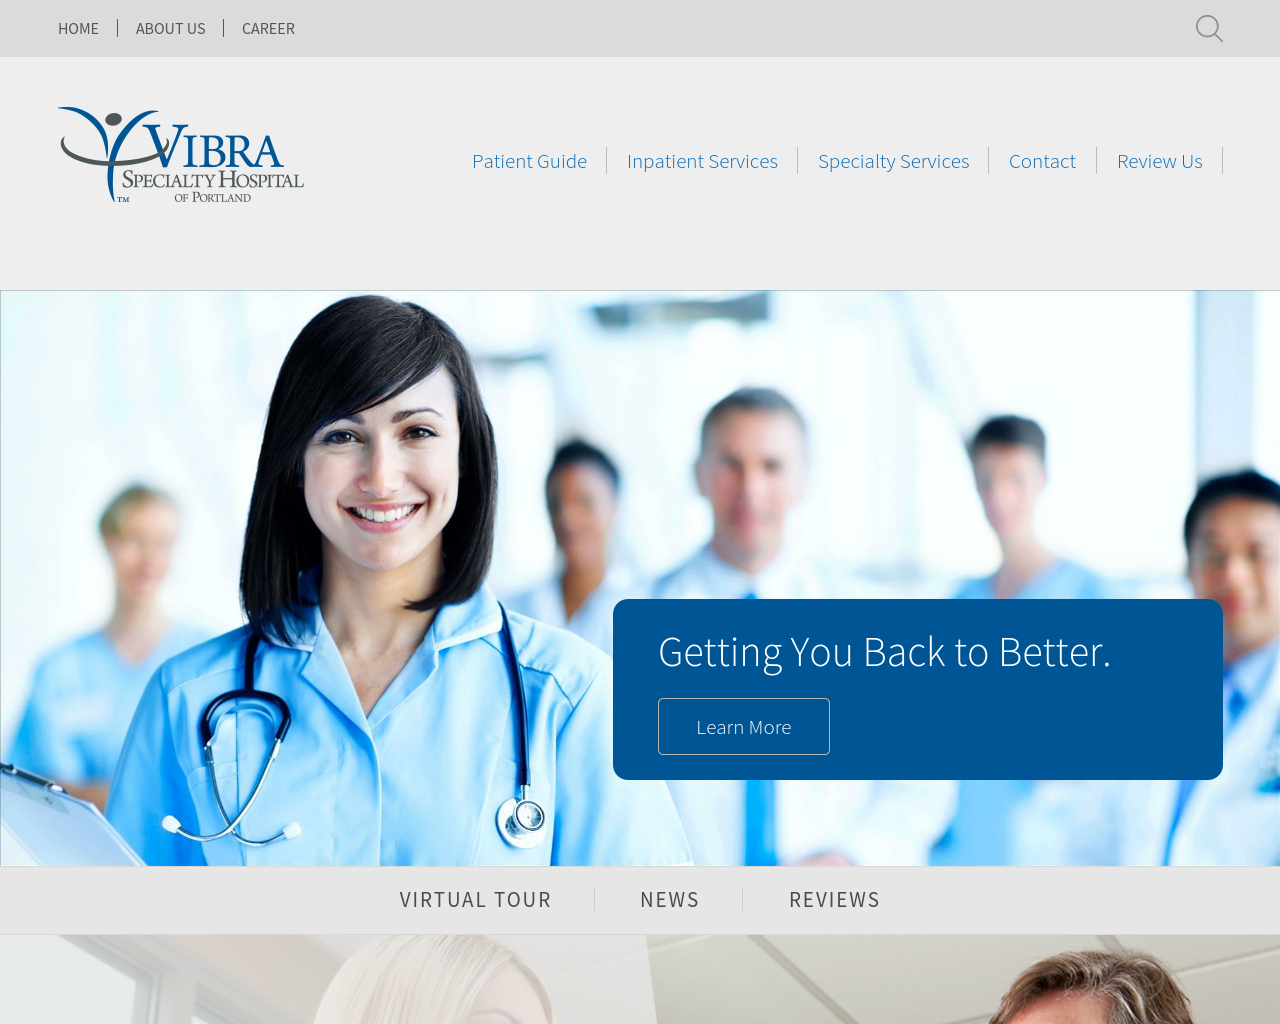 Vibra-Specialty-Hospital-of-Portland-Advertising-Reviews-Pricing